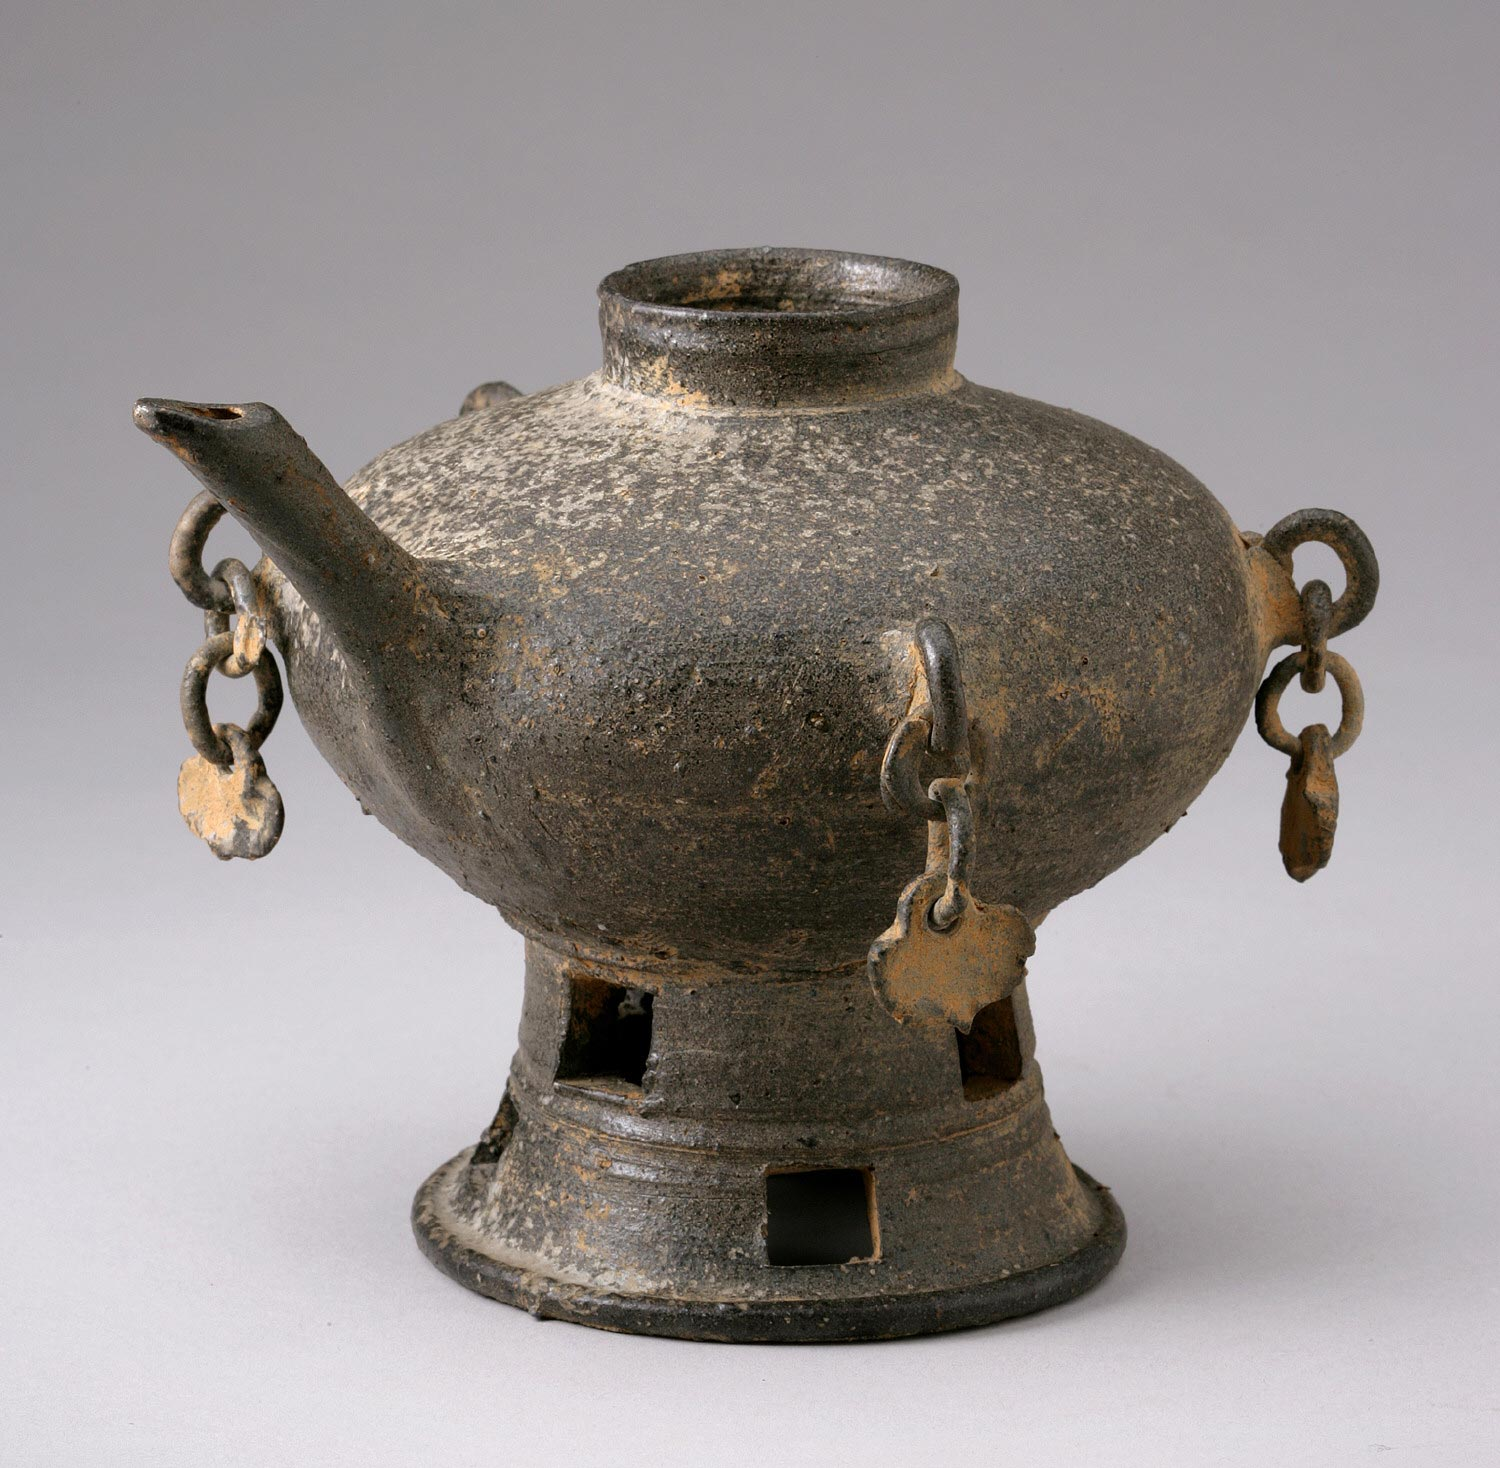 Mounted Jar with Spout